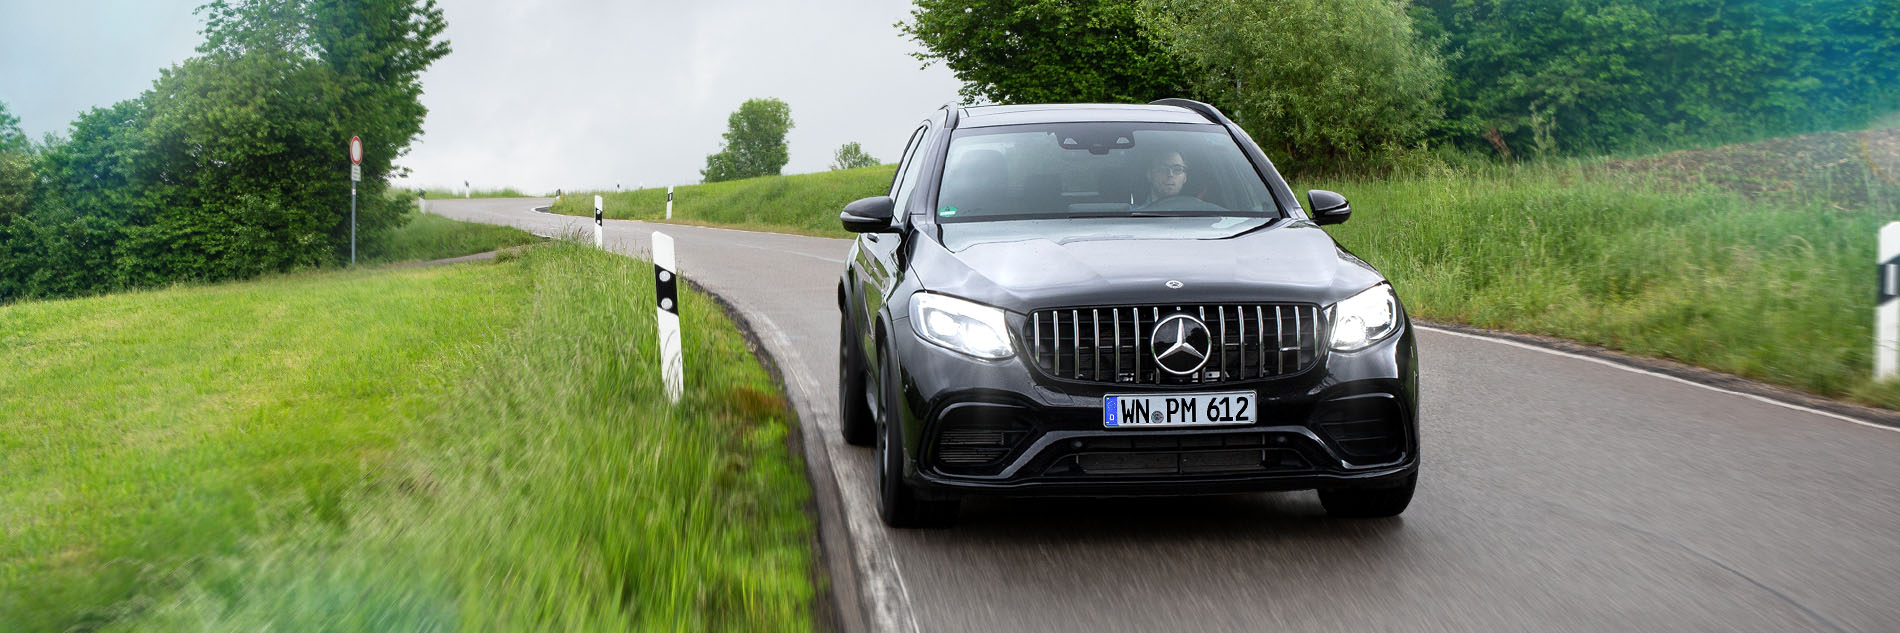 Tuning Mercedes-AMG GLC 63